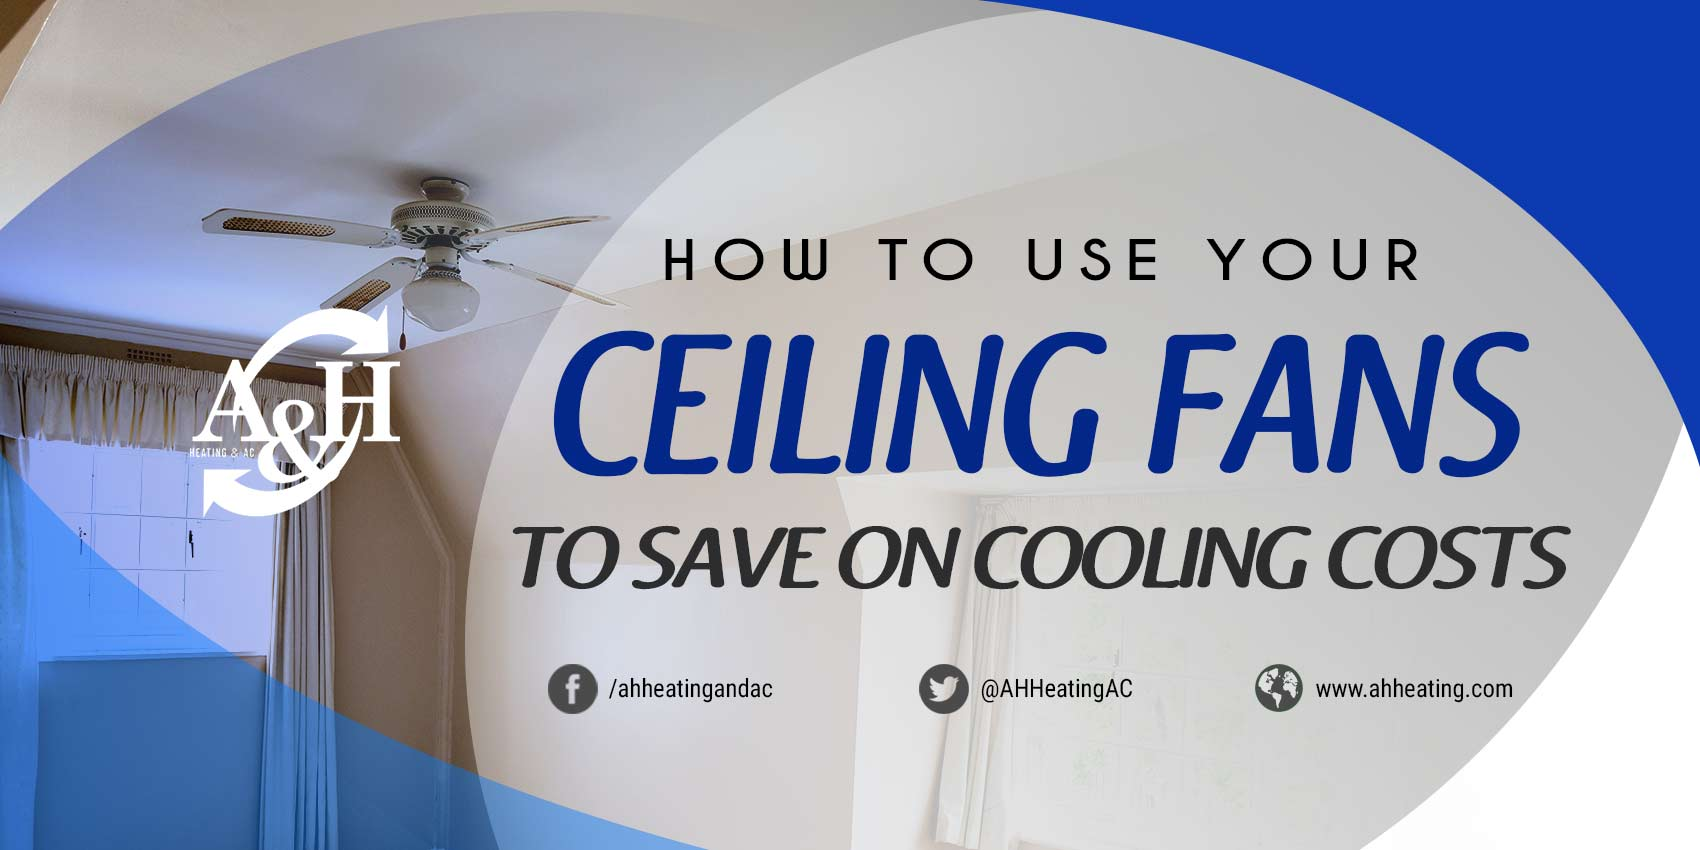 How to Use Your Ceiling Fans to Save on Cooling Costs